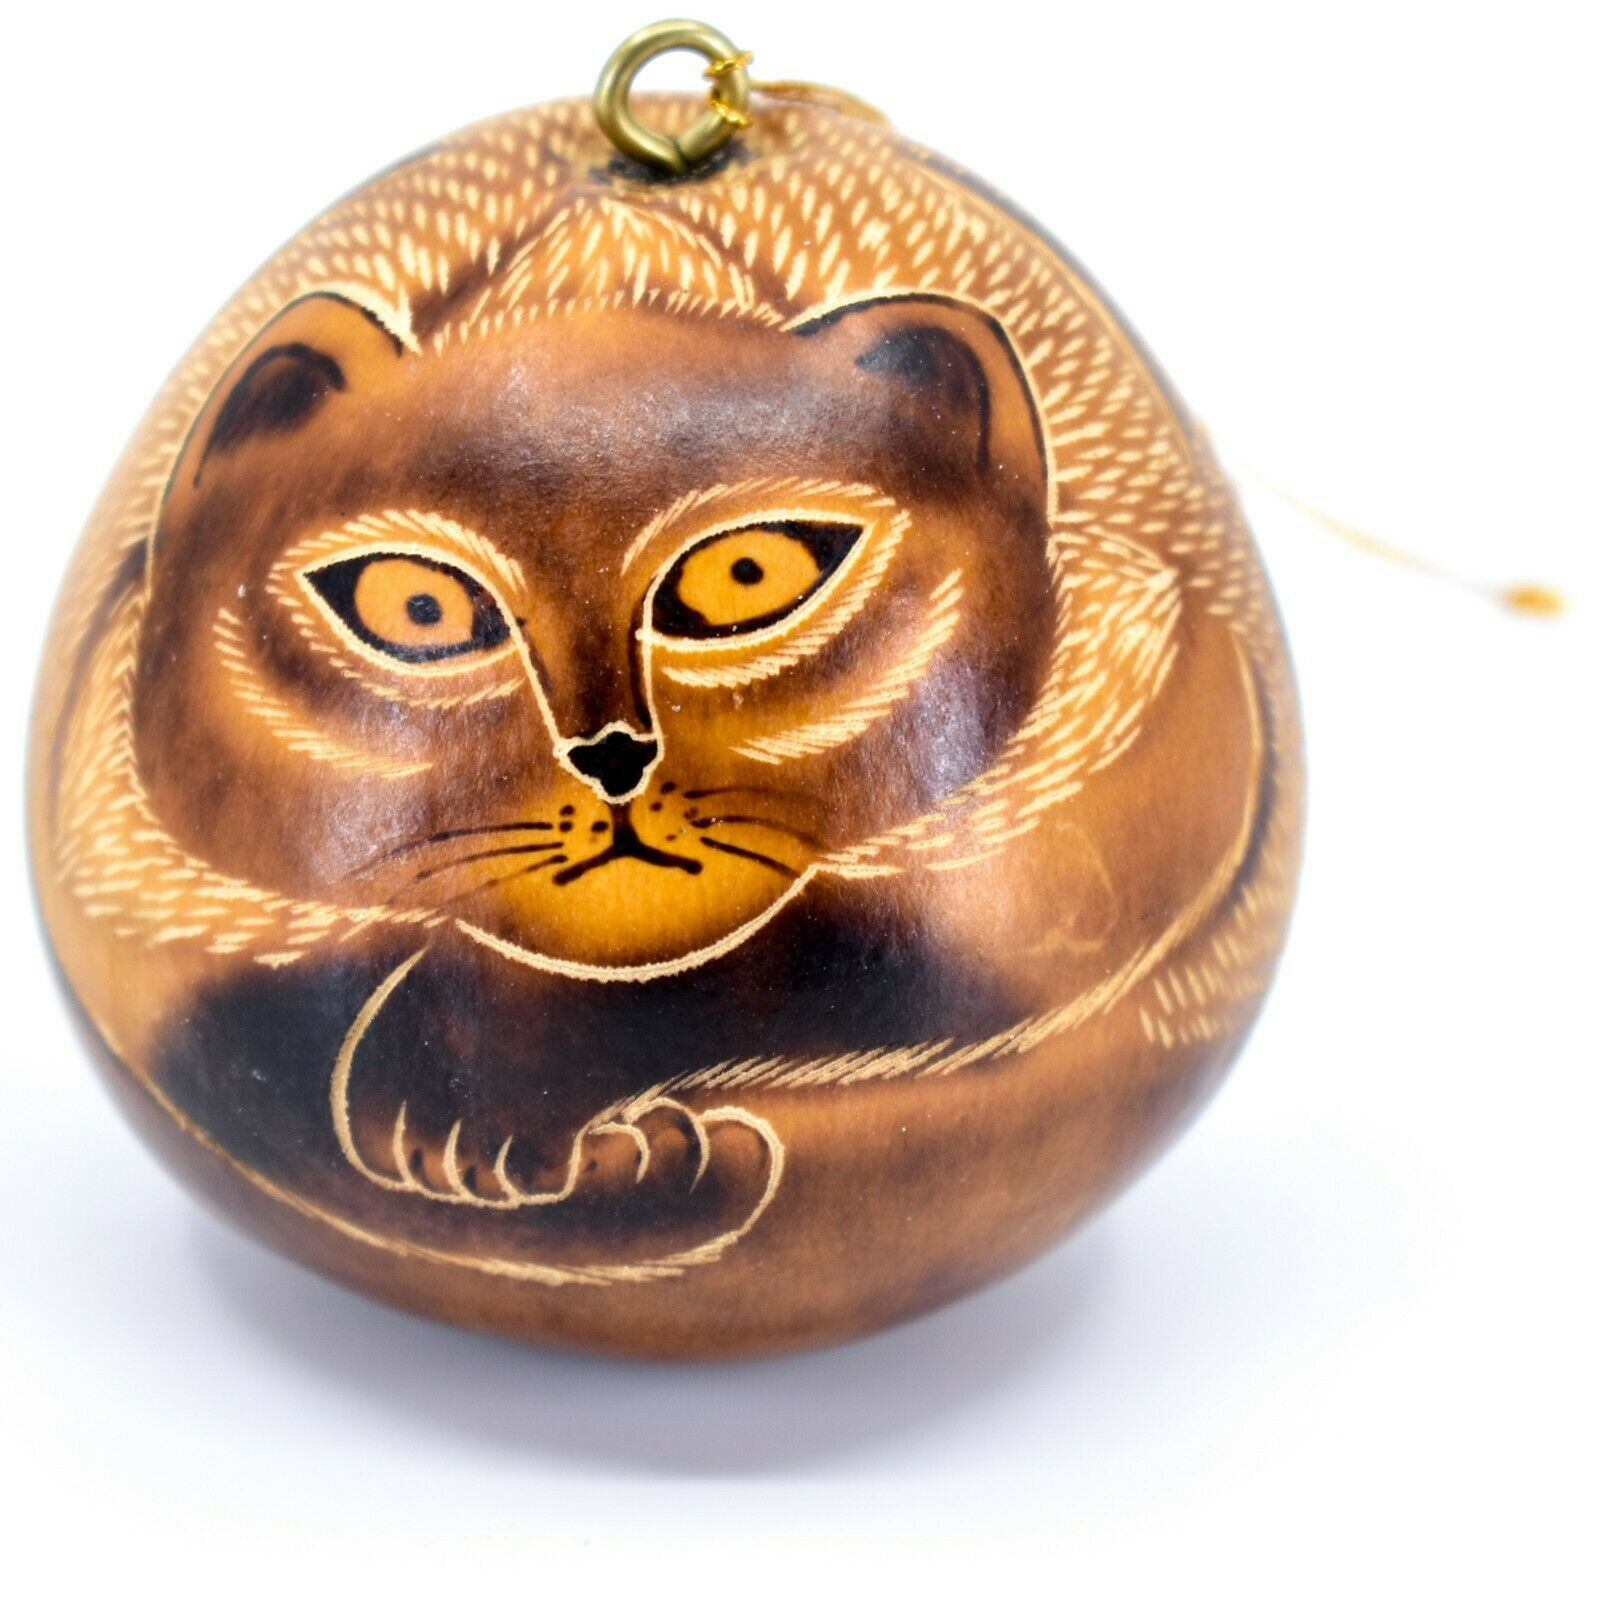 Handcrafted Carved Gourd Art Laying Cat Kitten Kitty Ornament Made in Peru